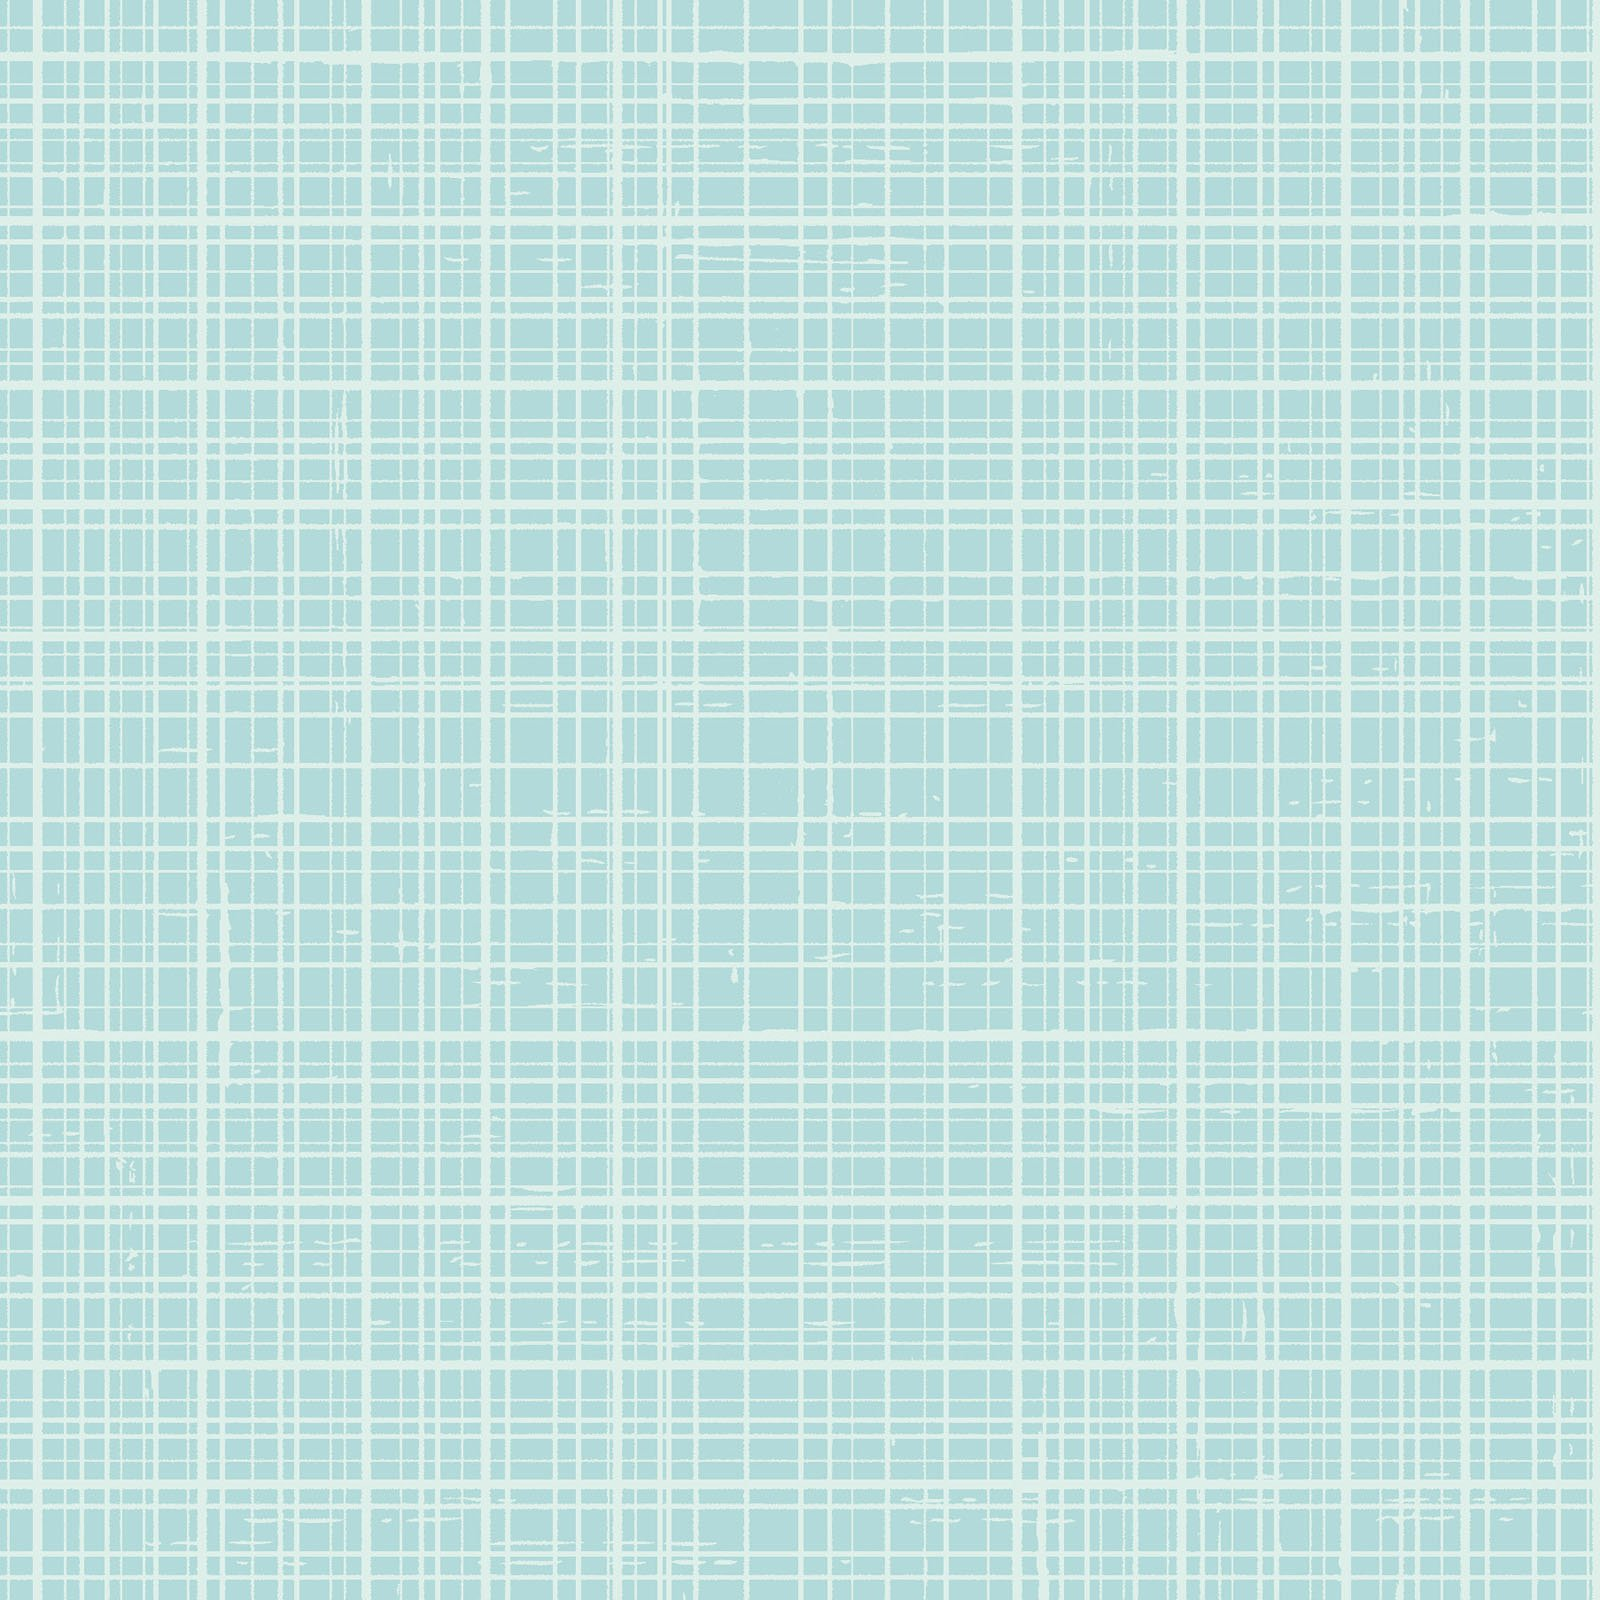 FLFE-4474 T - FLOWERS&FEATHERS BY SILLIER THAN SALLY TEXTURE TEAL - ARRIVING IN JULY 2021